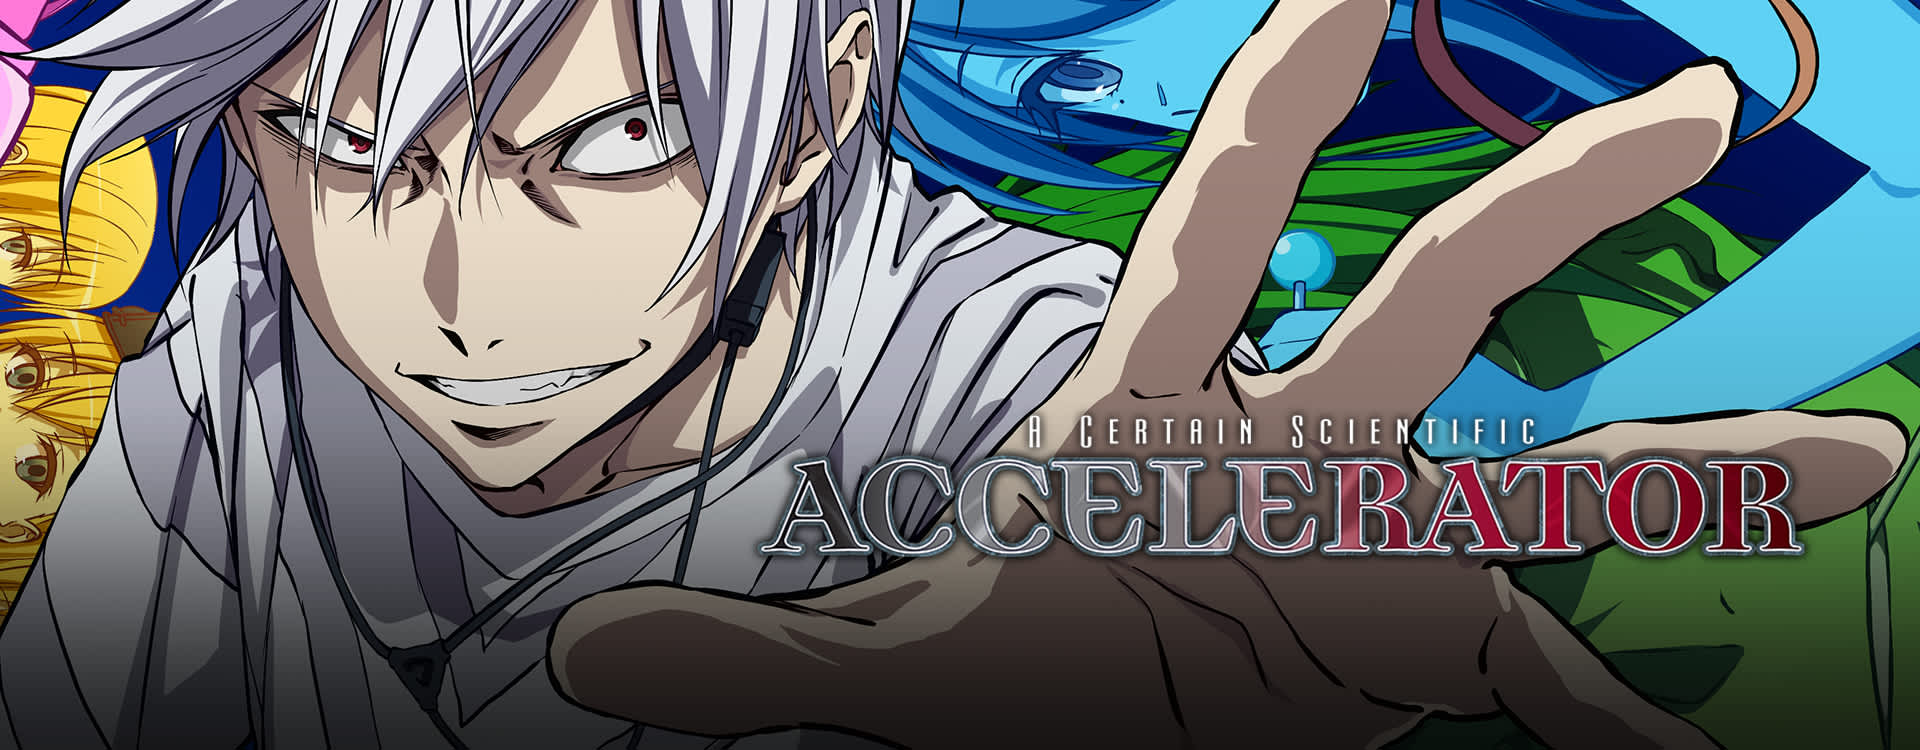 FUNimation Accelerator Anime Site (English)